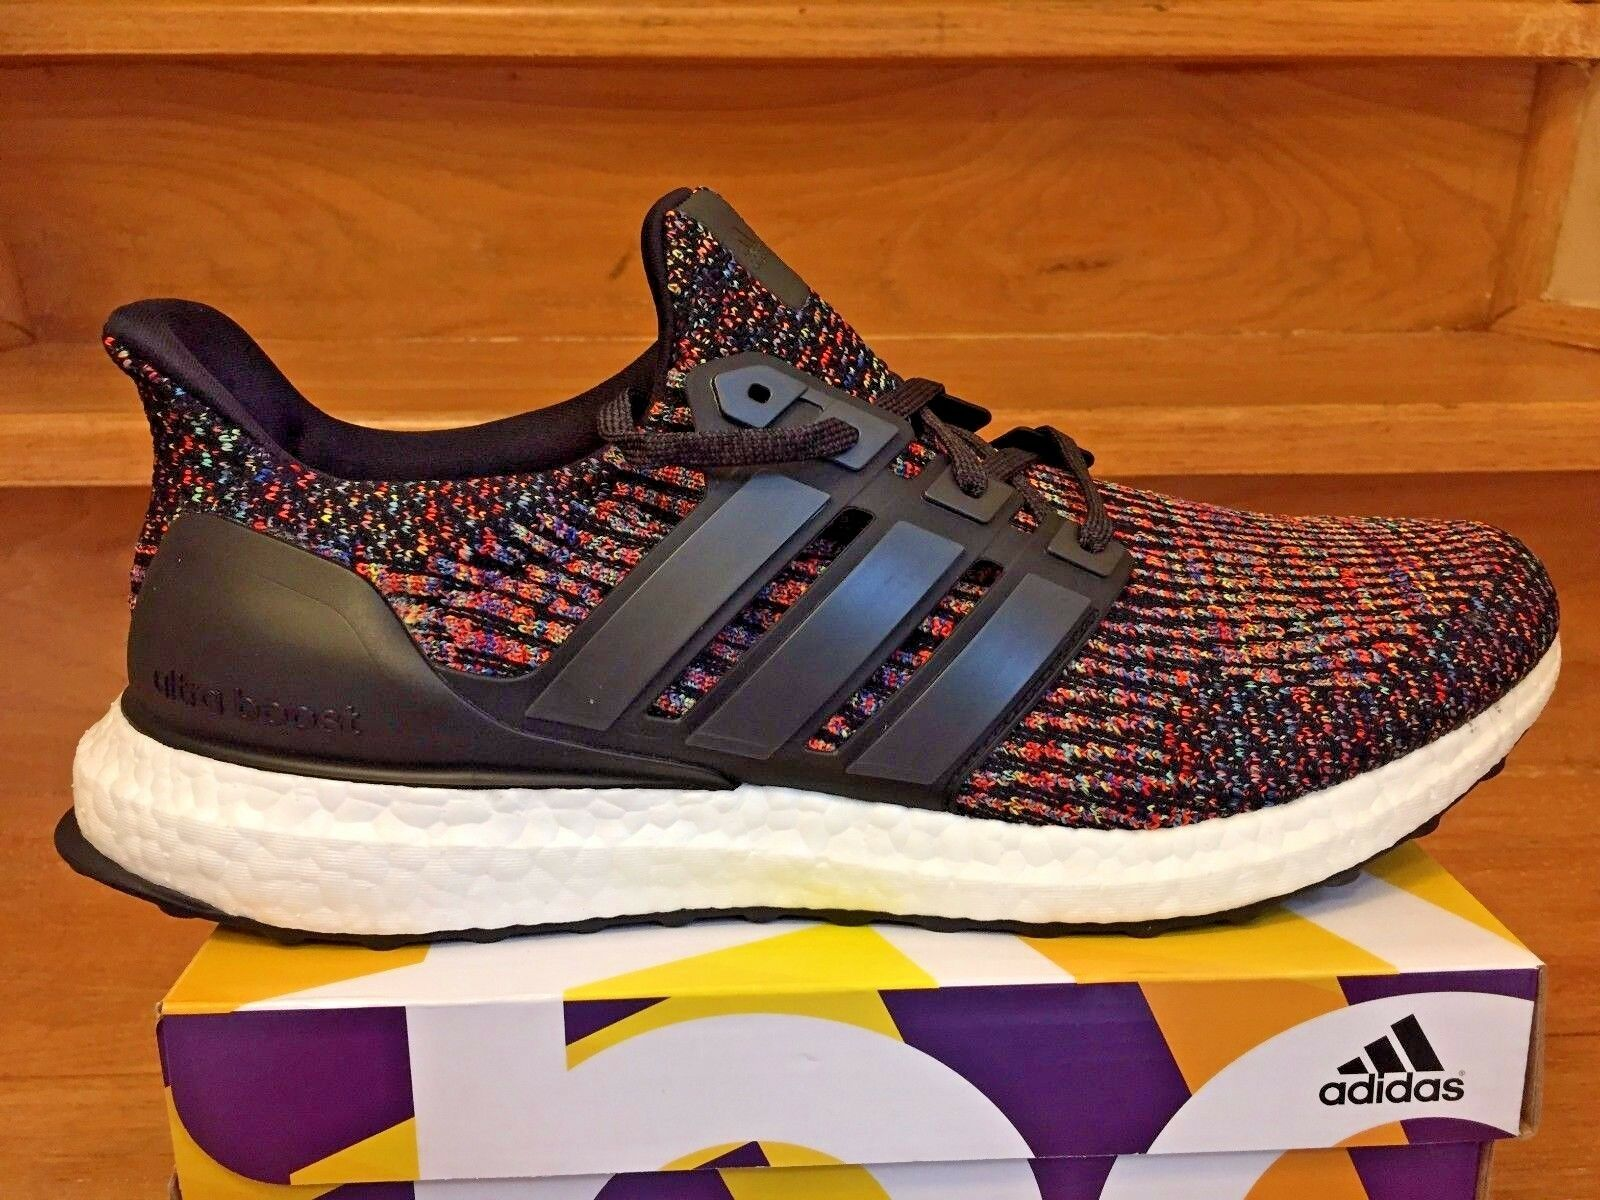 "Adidas Ultra Boost 3.0 LTD  Multicolor"" Rainbow PK Size 11.5 shoes (CG3004)"